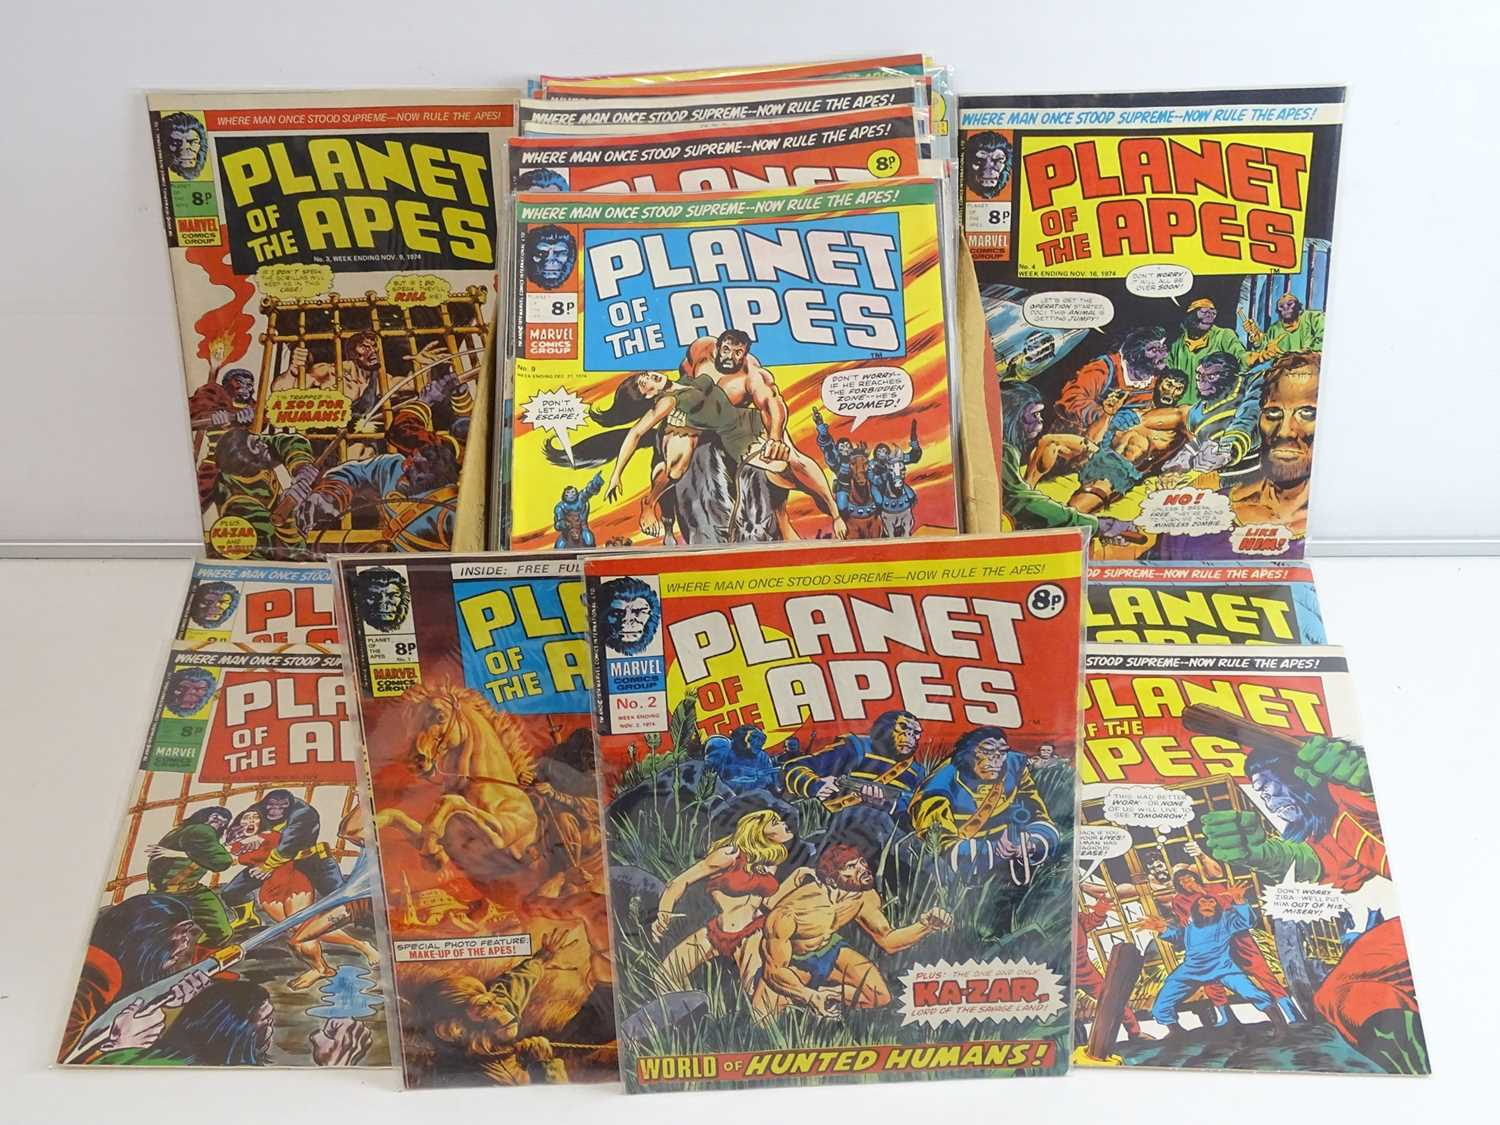 PLANET OF THE APES #1 to 123 - (123 in Lot) - (1974/77 - BRITISH MARVEL) - Complete 123 issue run